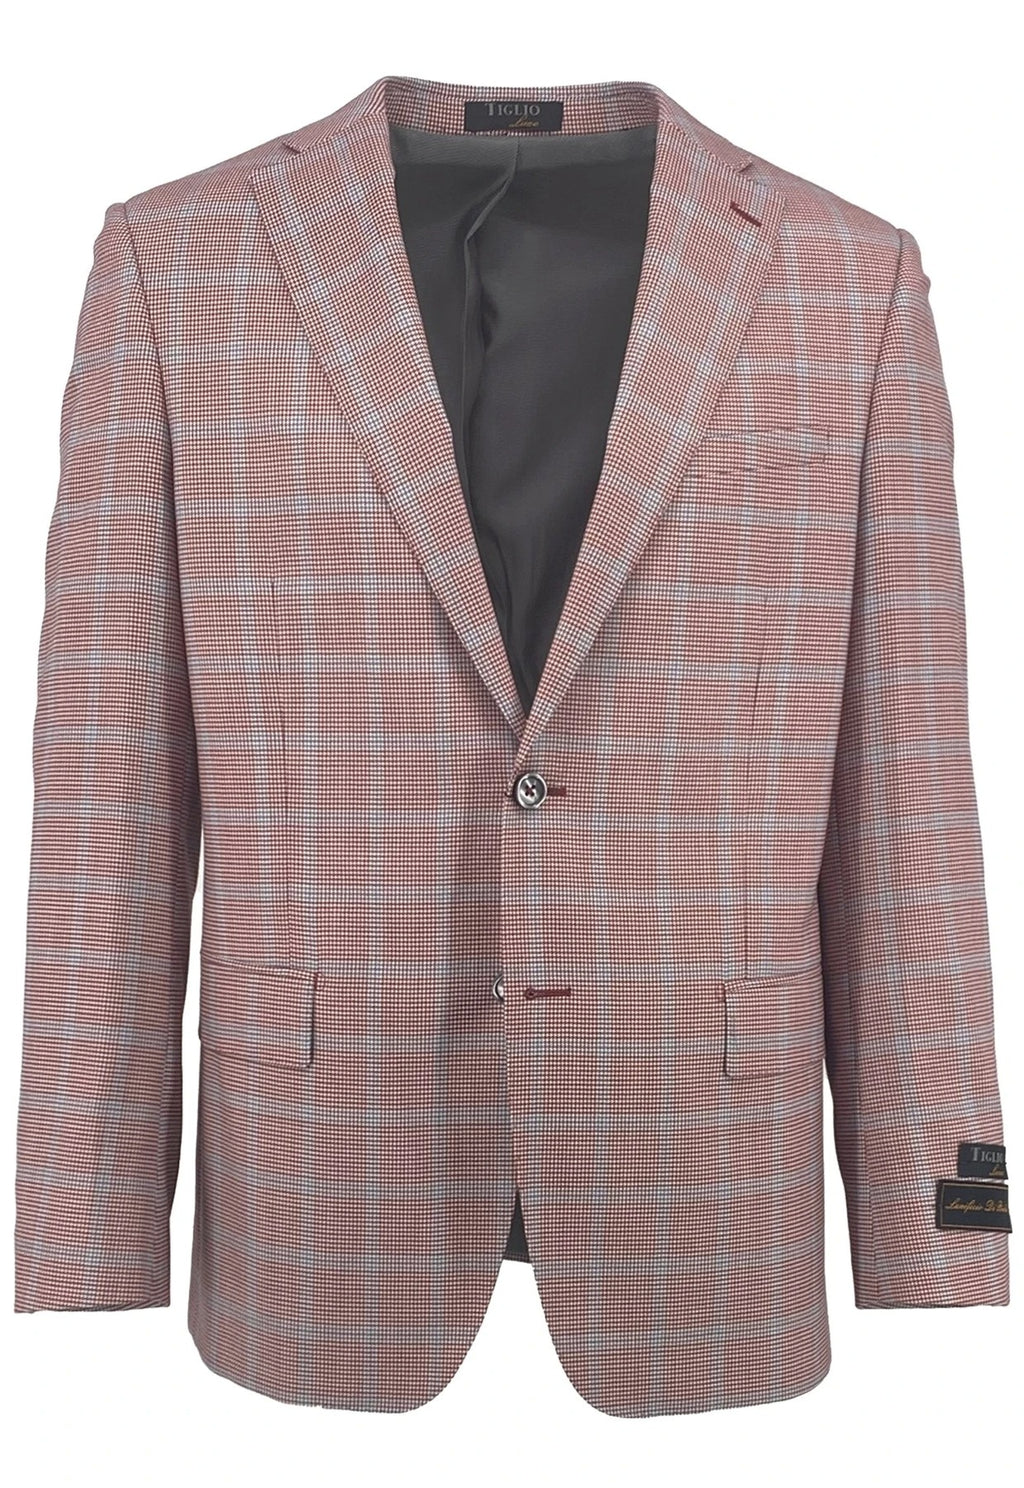 Dolcetto Red Houndstooth with Light Blue Windowpane Modern Fit, Pure Wool Jacket by Tiglio Luxe CT552455